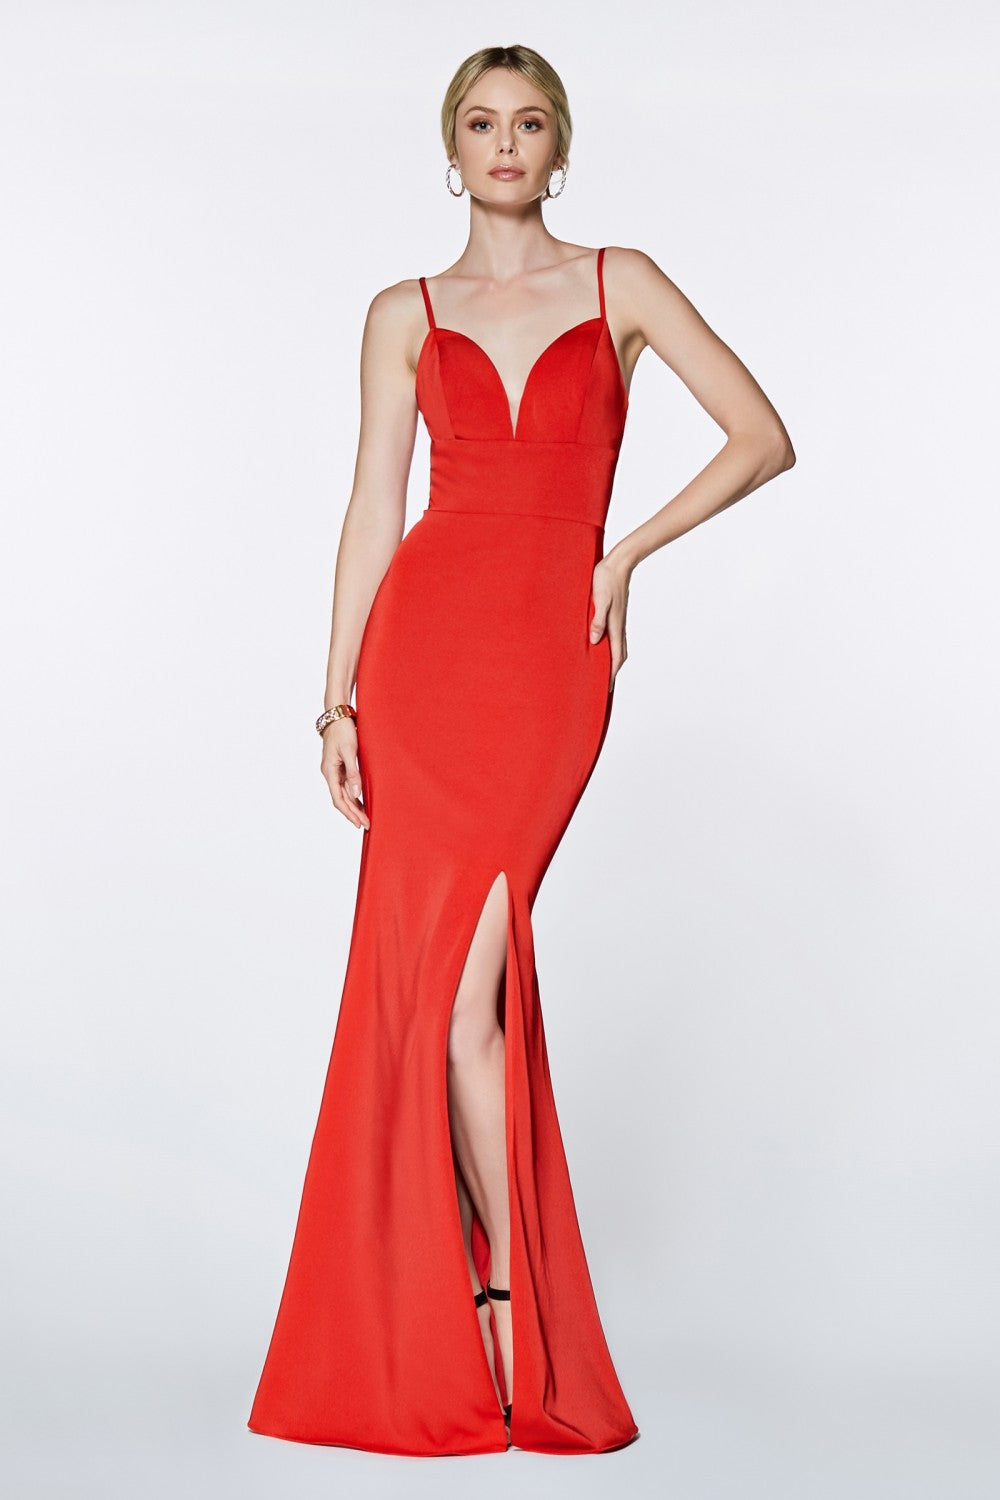 Yolanda Bridesmaid Dress Straight Front Skirt Slit in Red C7470NR-Red SAMPLE IN STORE